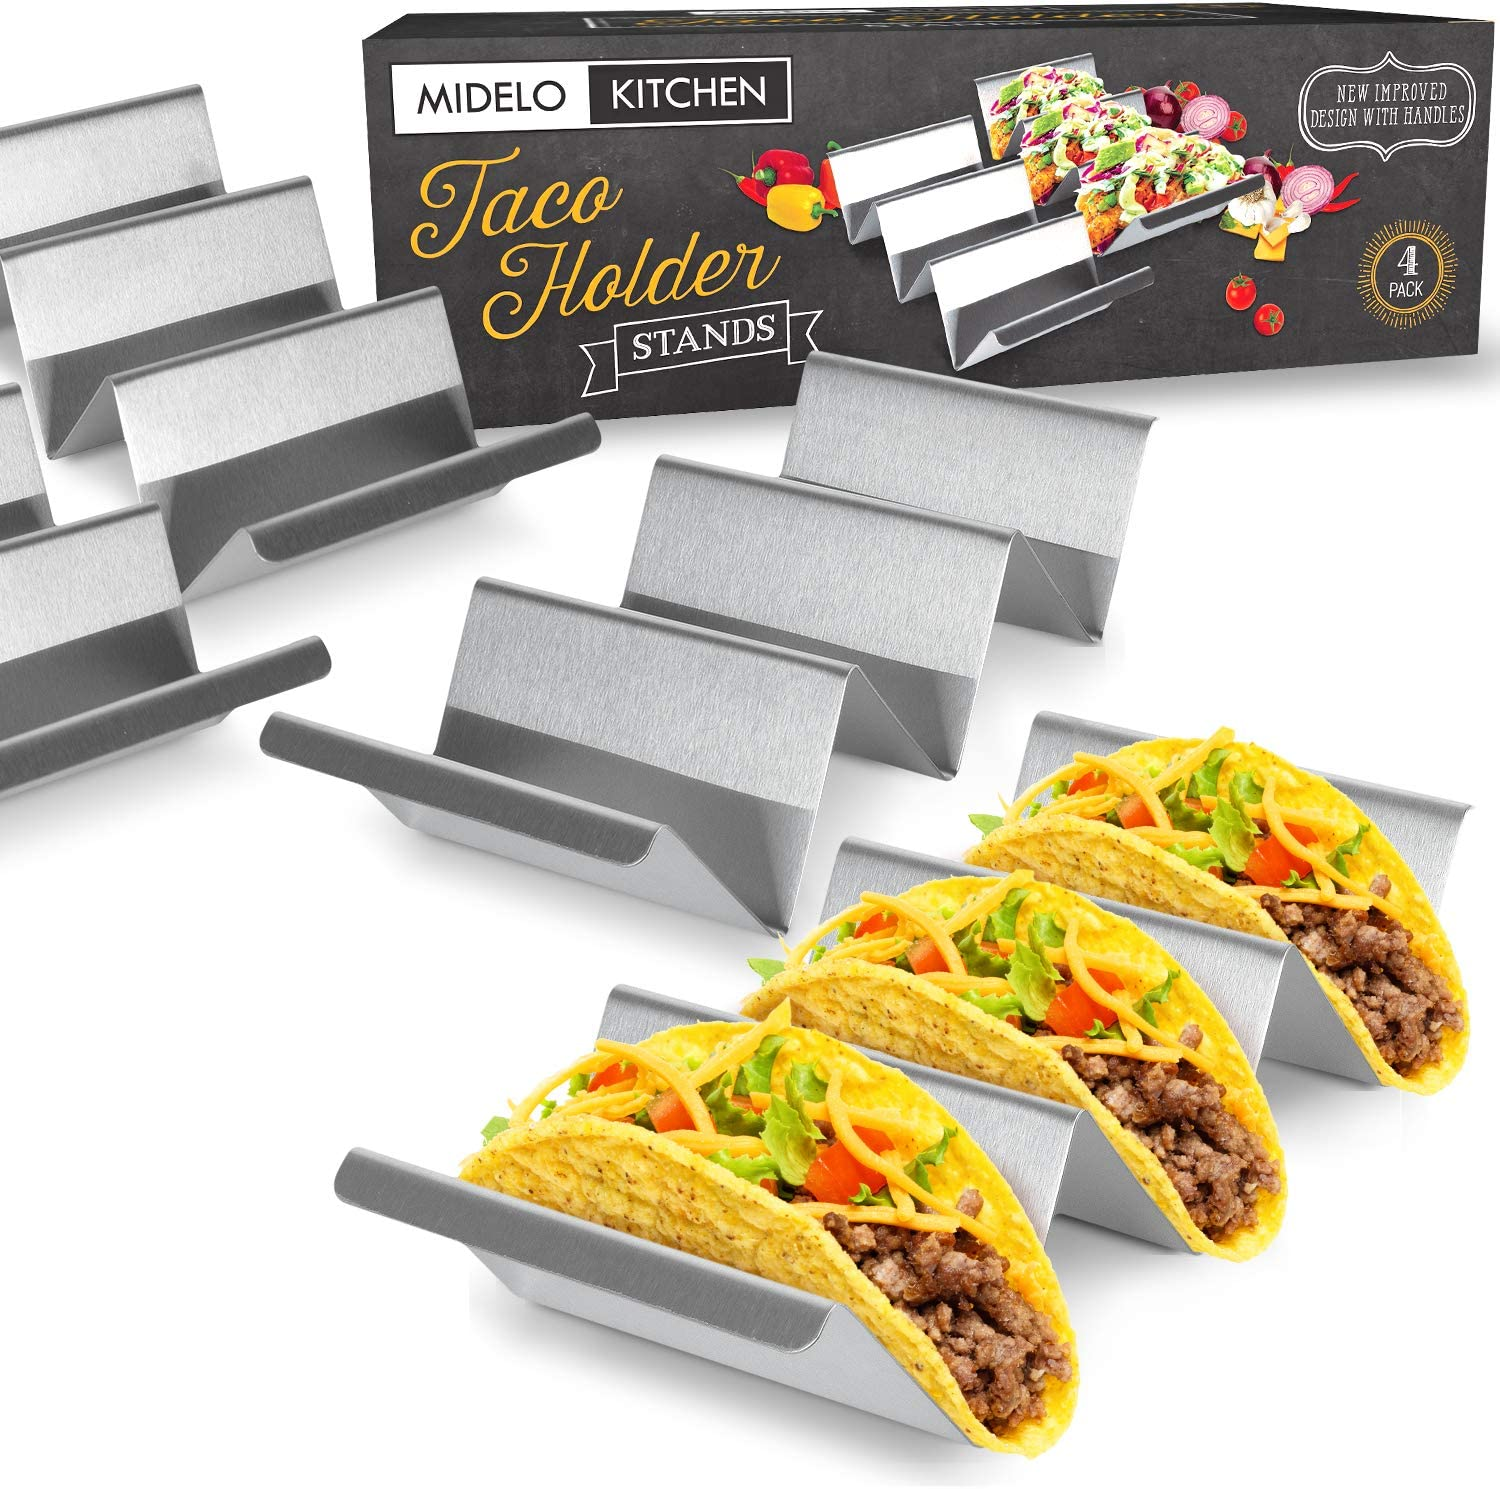 Kitchen 3//4 Slot Mexican Taco Holder Stainless Steel Display Food Stand Rack